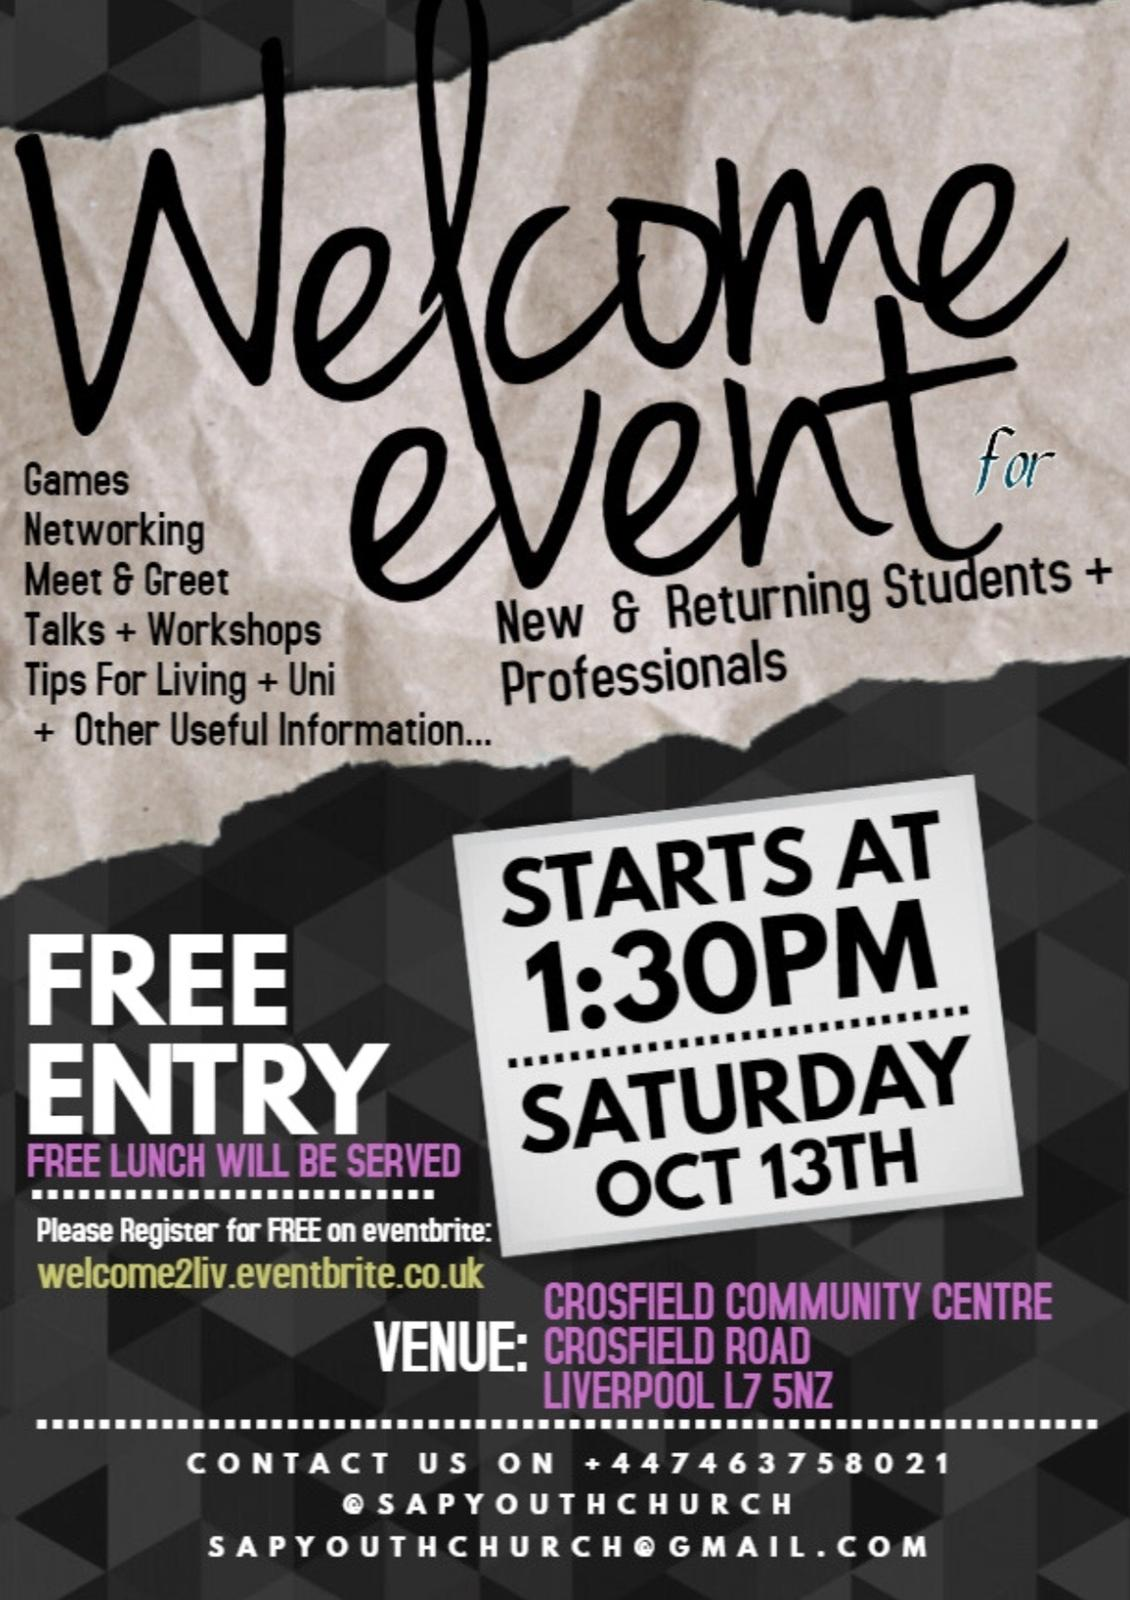 Welcome Event 2018 @ Crosfield Community Centre